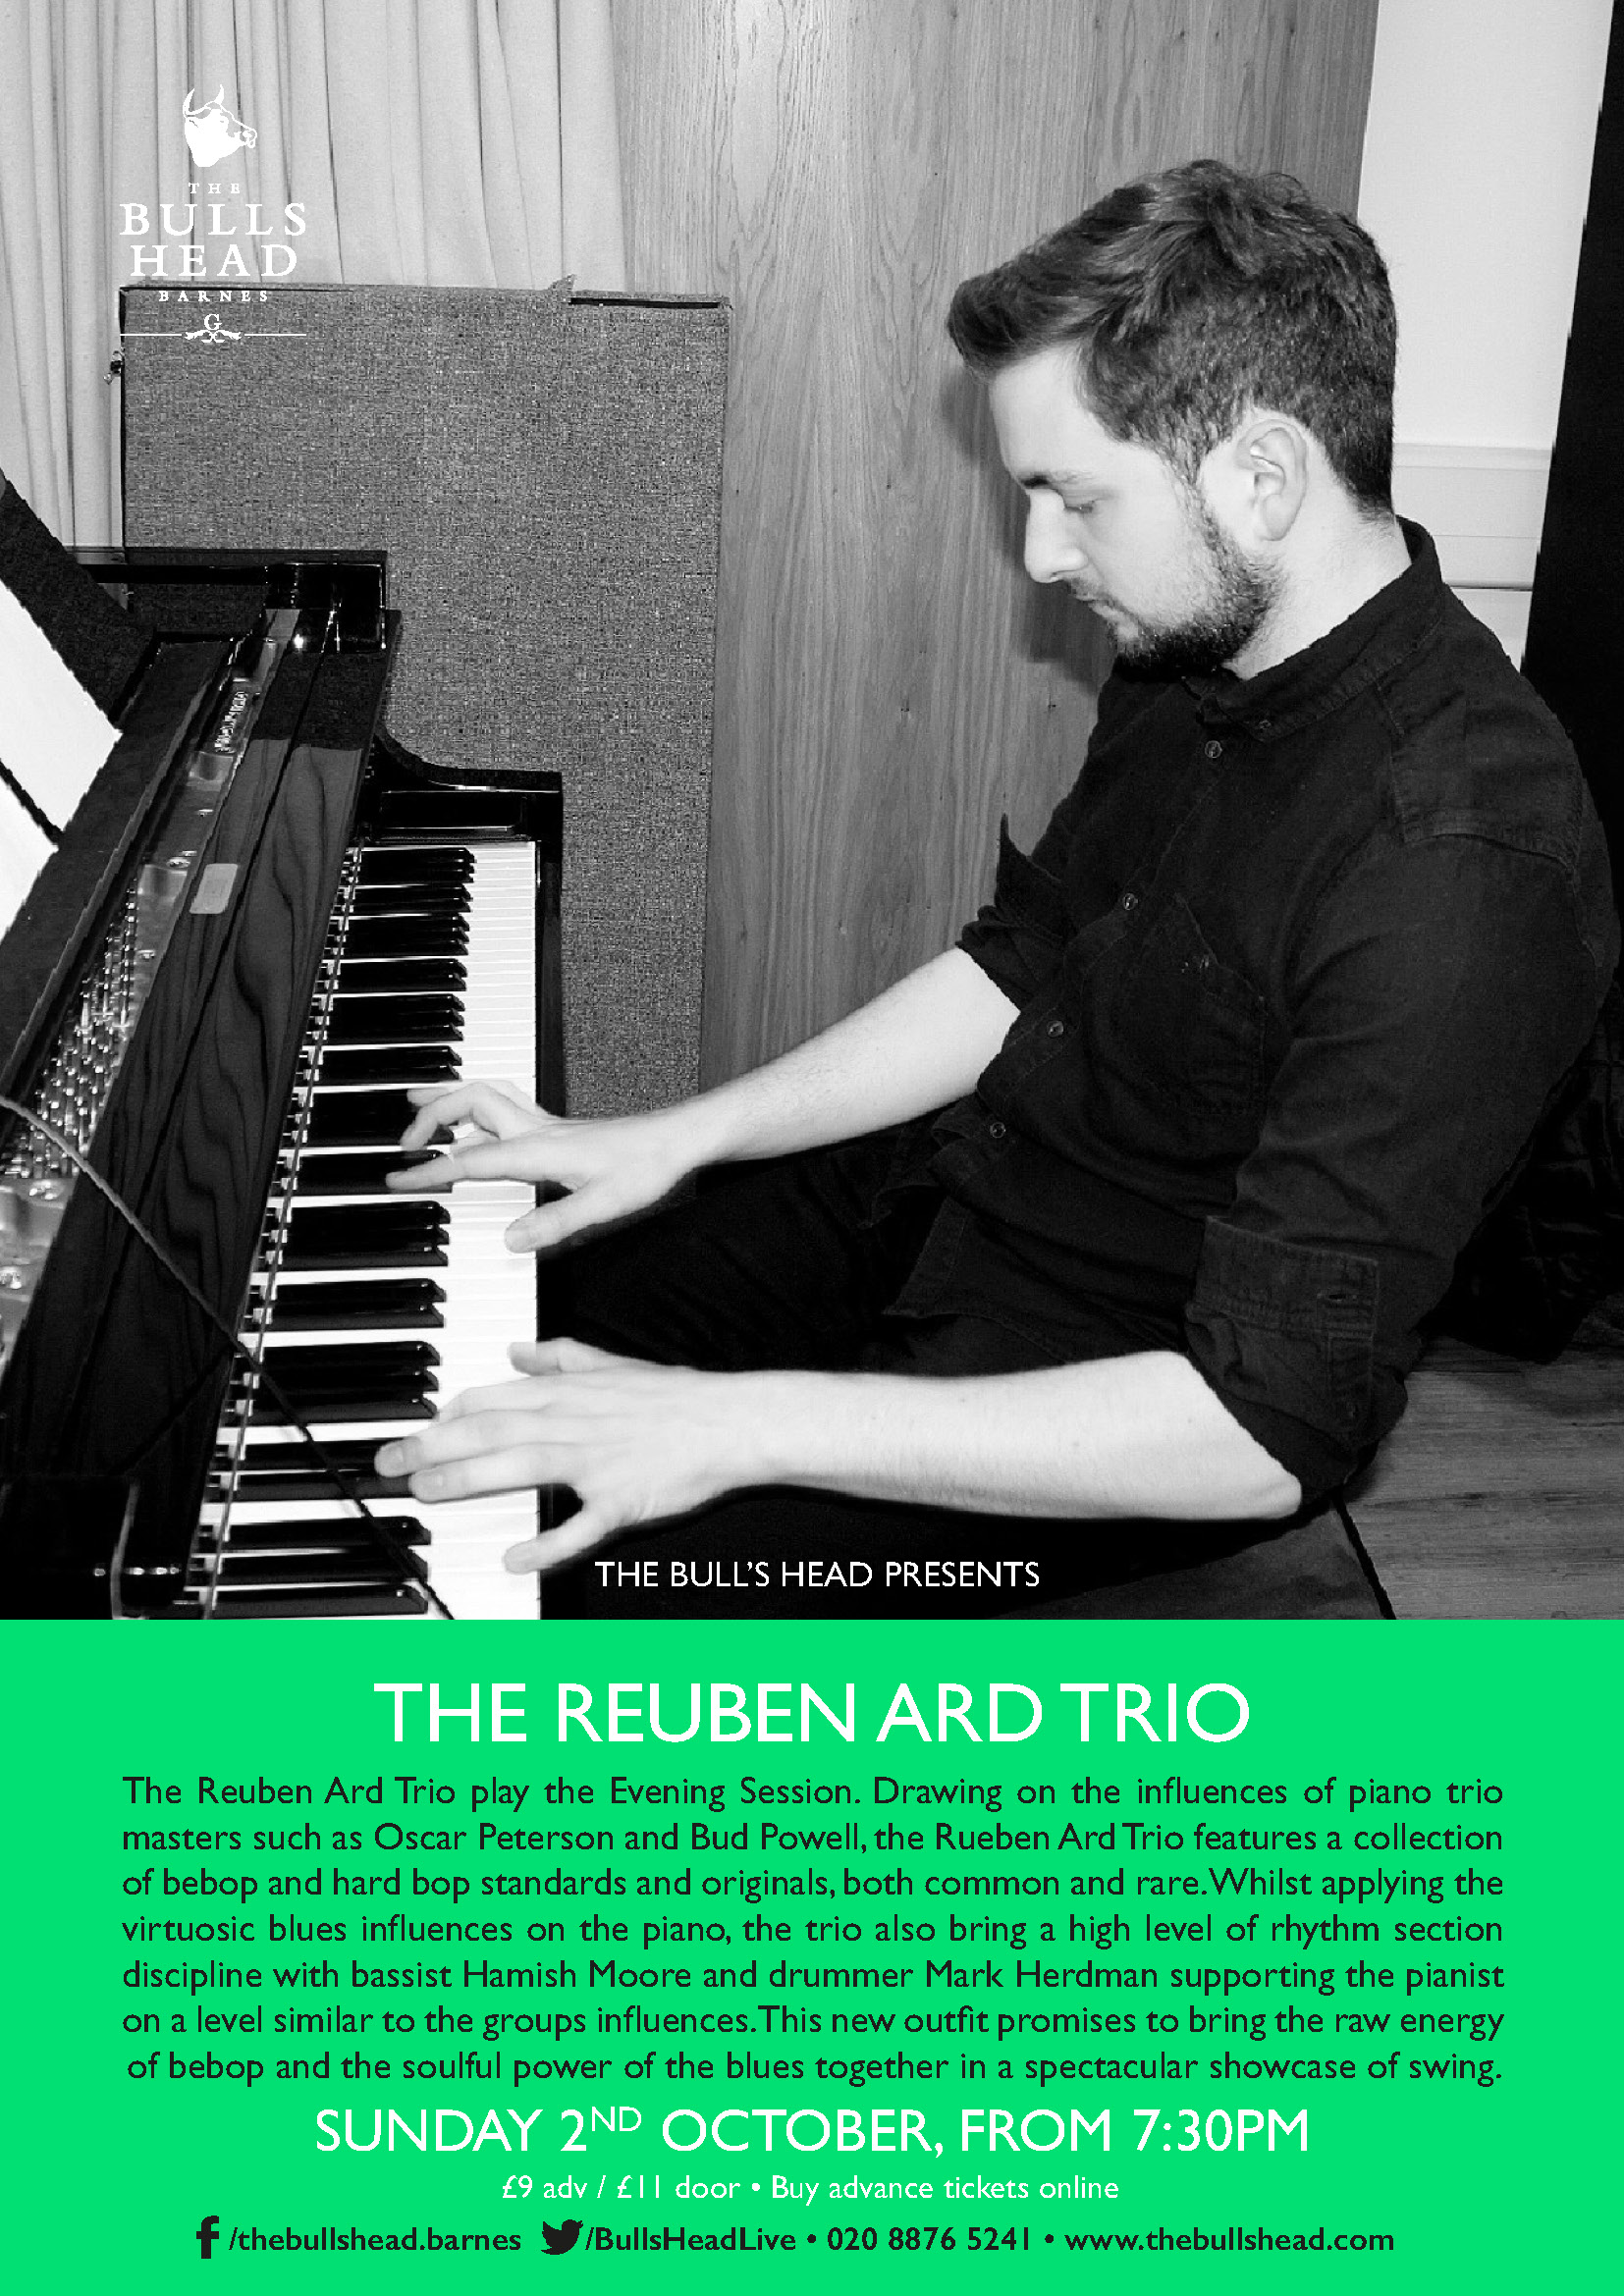 The Reuben Ard Trio play the Evening Session